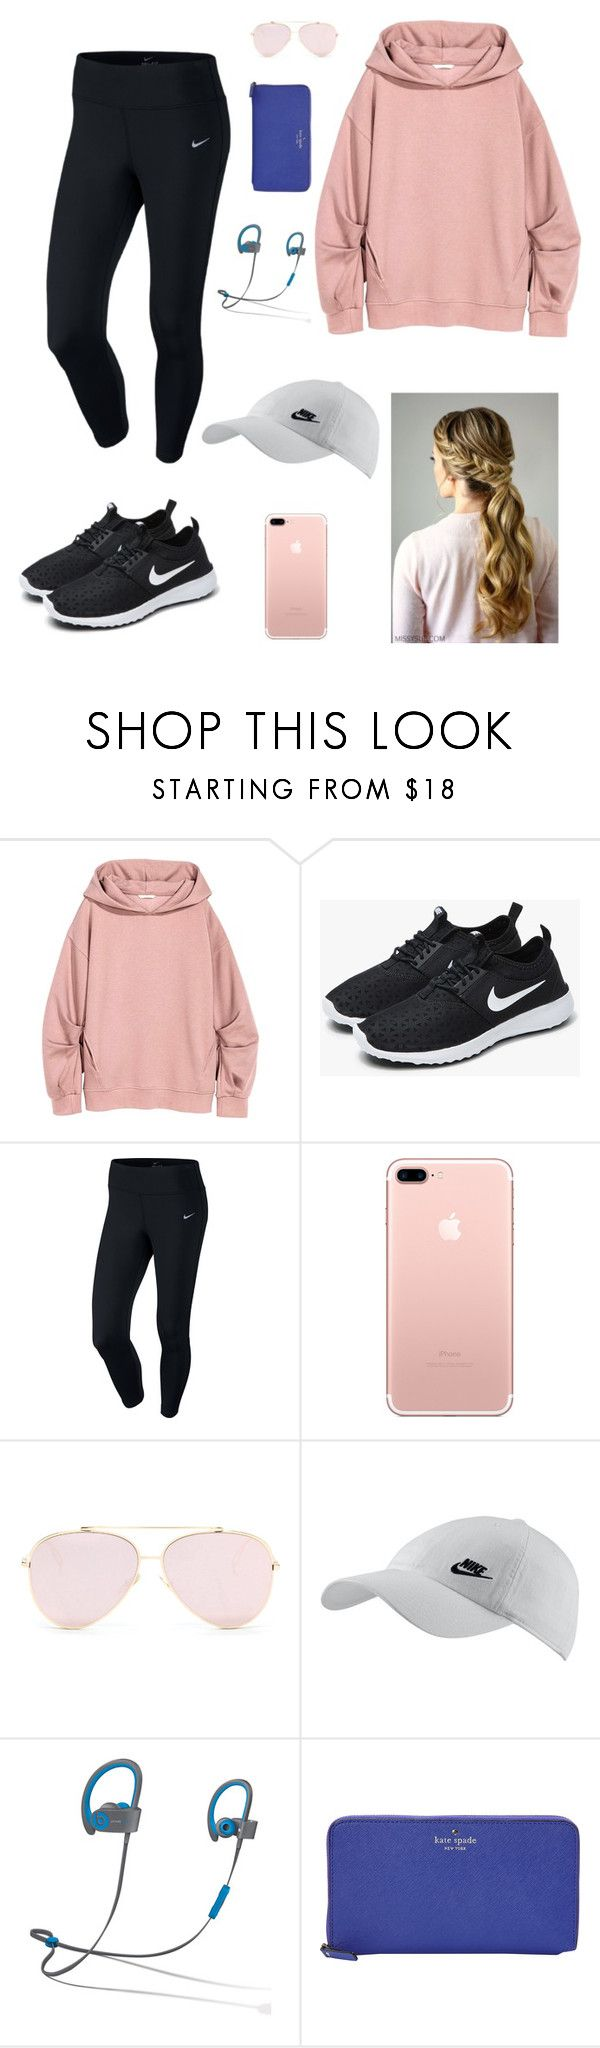 Untitled #98 by gabriellaallen on Polyvore featuring NIKE, Kate Spade and Beats by Dr. Dre